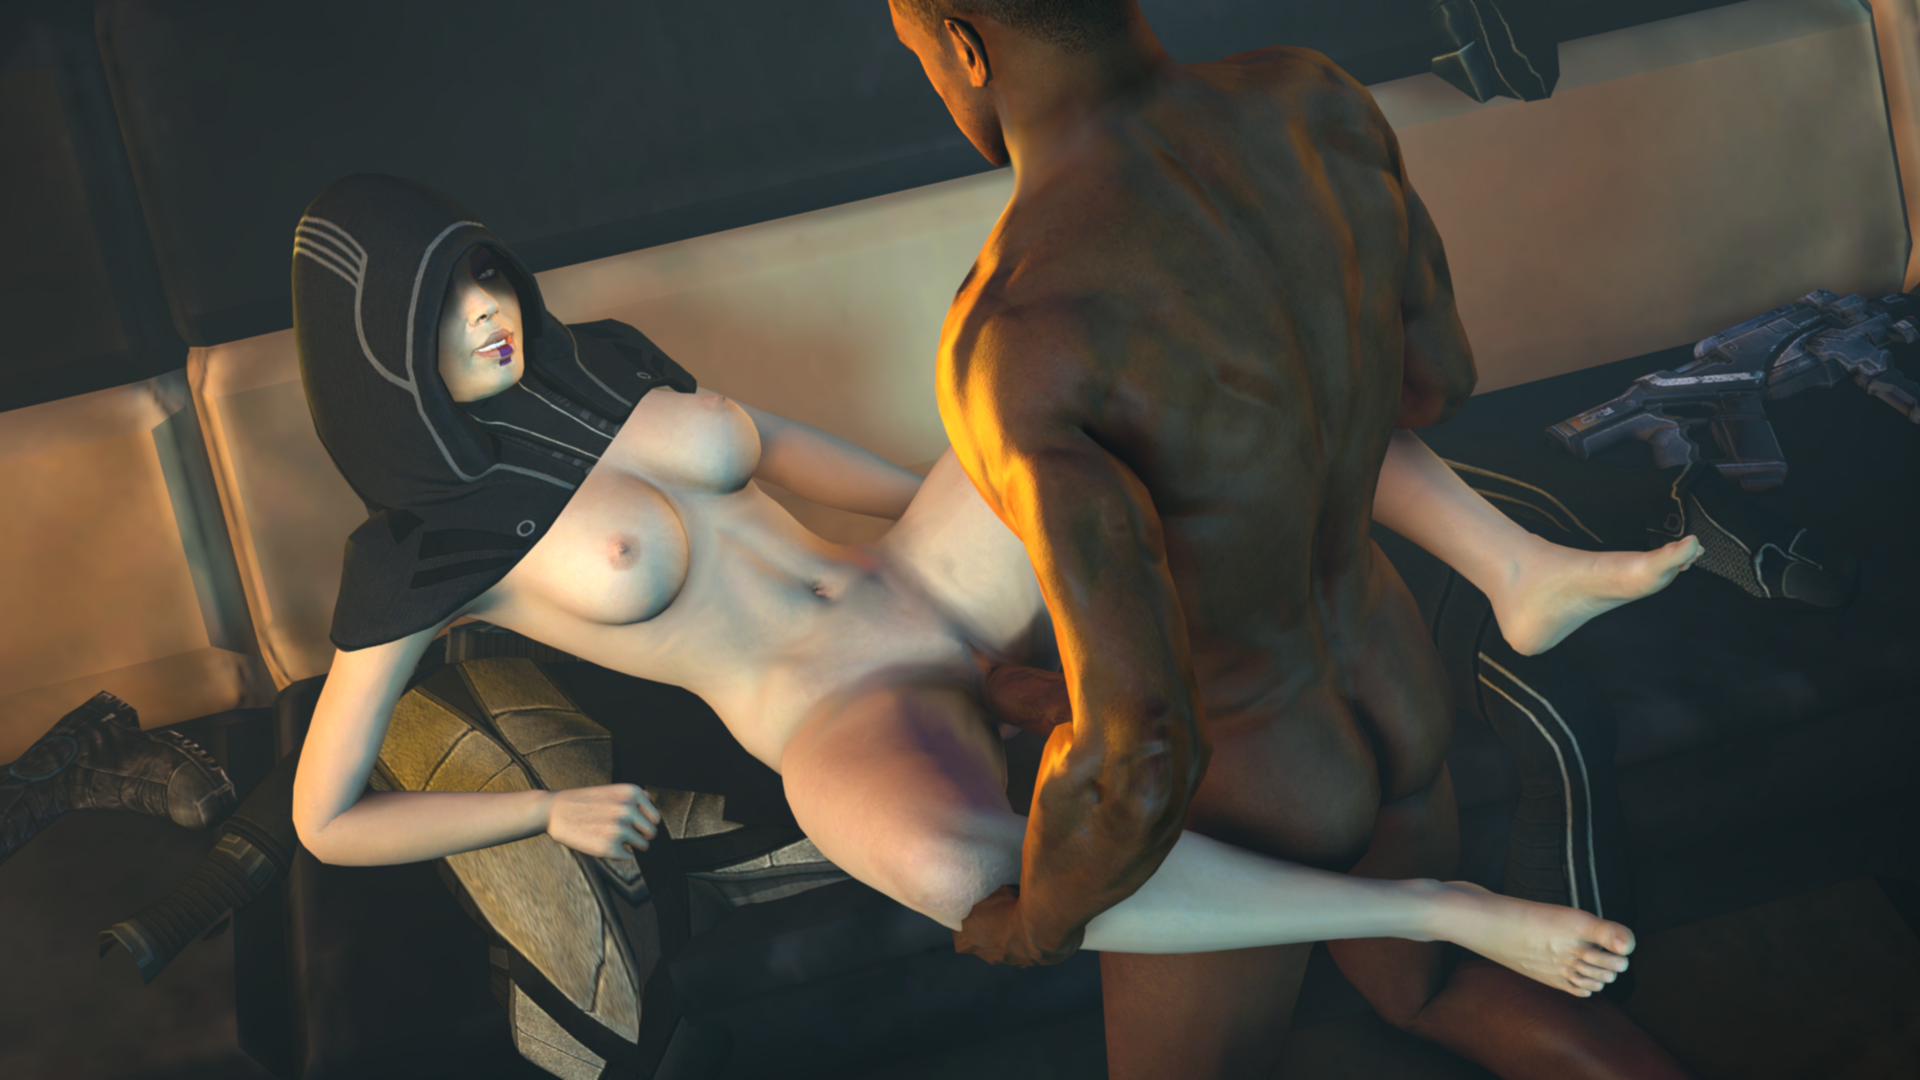 Mass effect porno sex naked movie